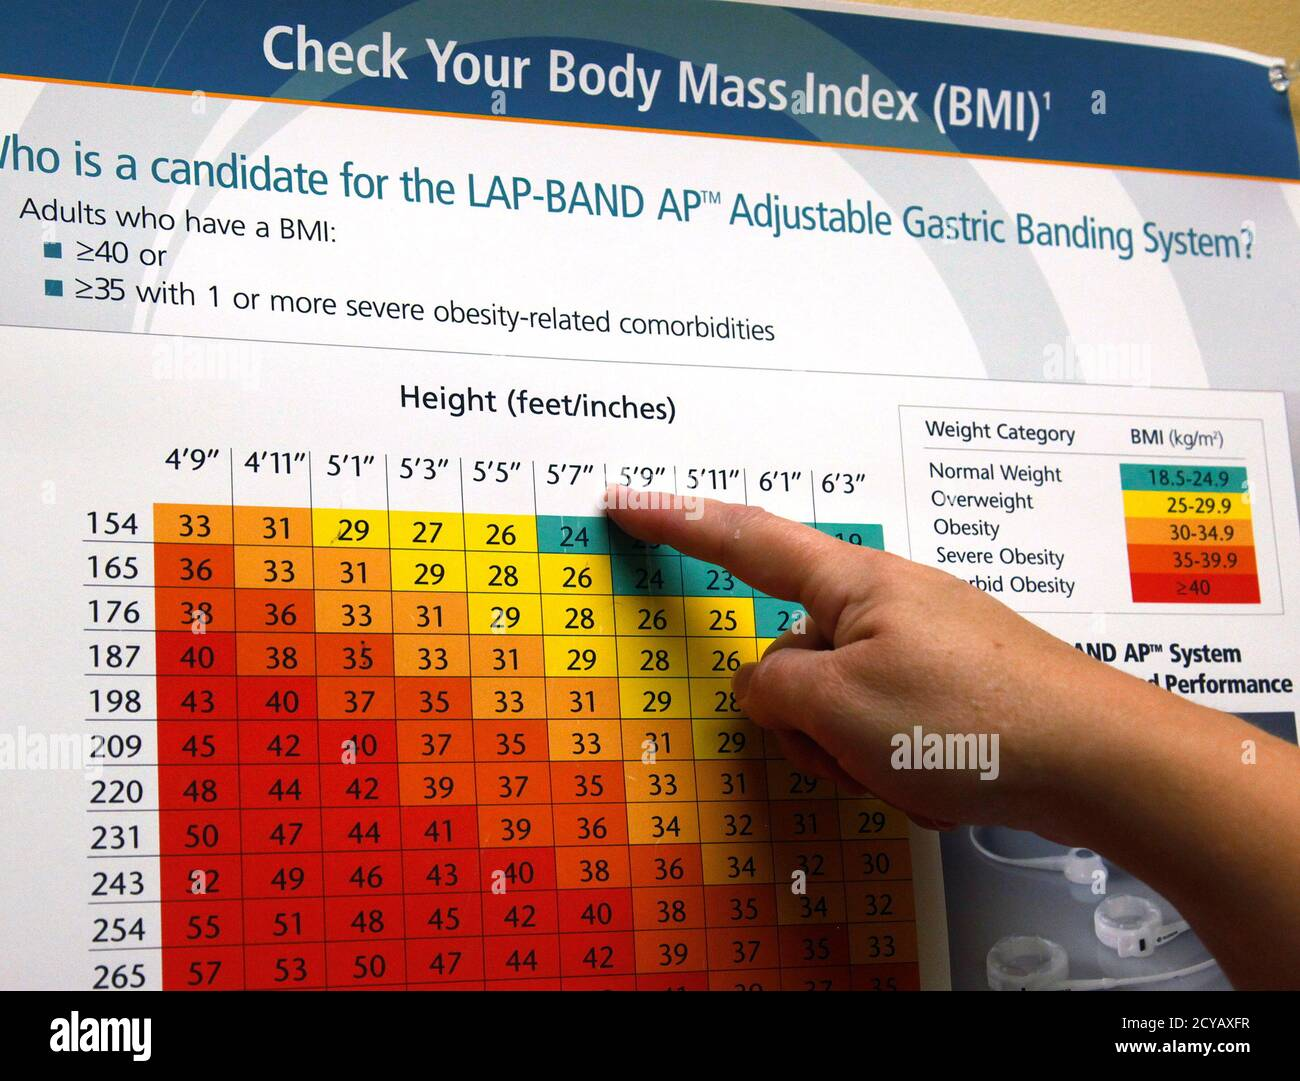 Bariatric Surgery Patient Carolyn Dawson Checks Her Body Mass Index Bmi On A Chart In Her Doctor S Office Before An Exam Three Weeks After Her Gastric Bypass In Denver September 22 2010